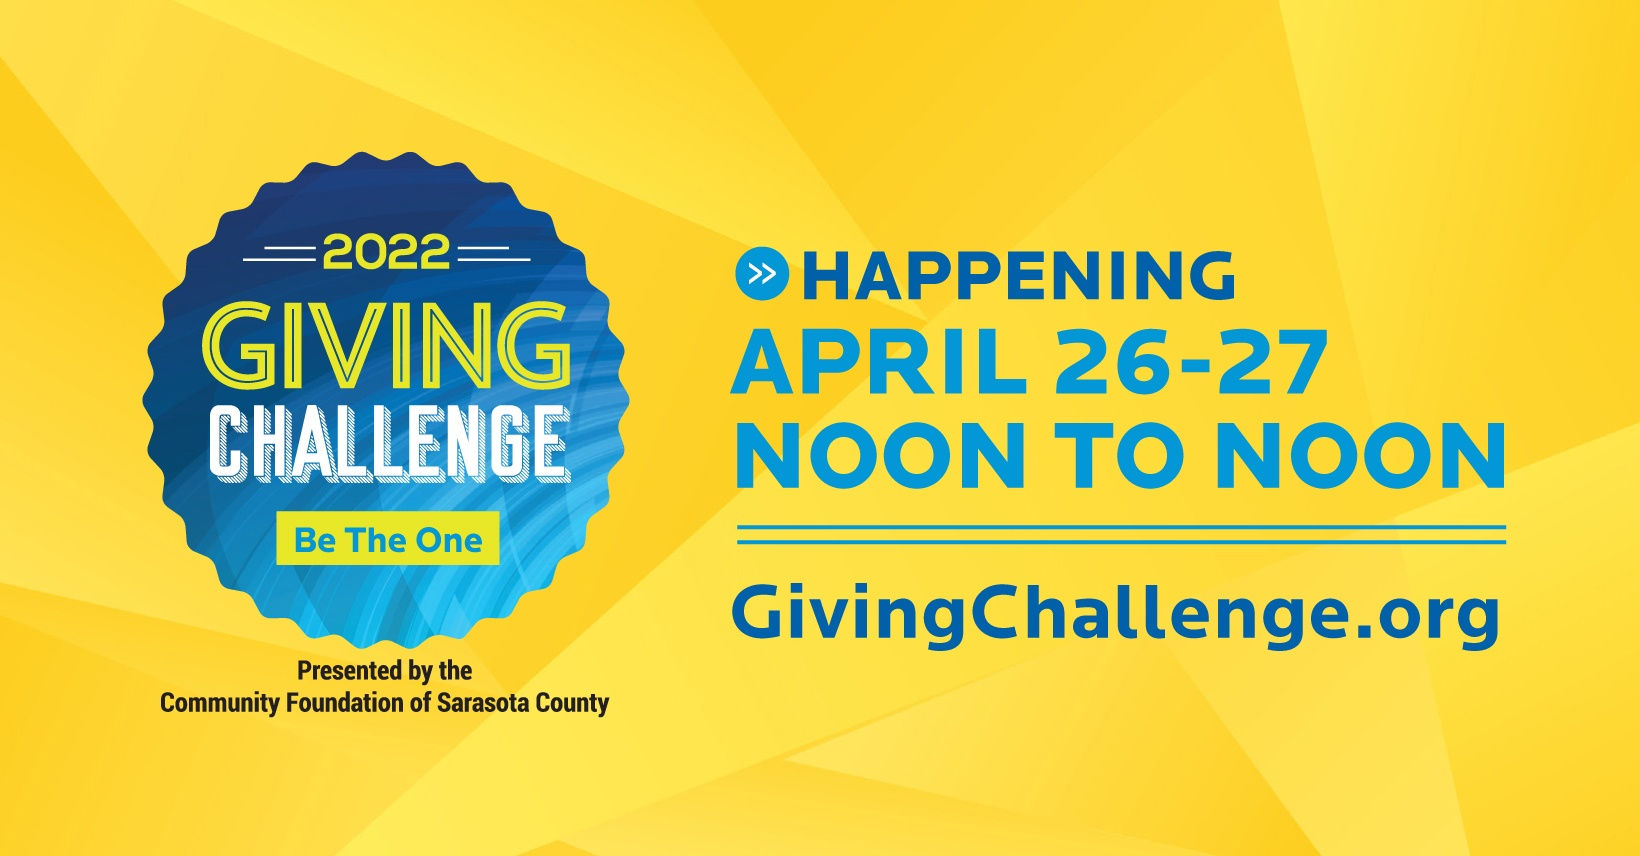 Giving Challenge event date and logo